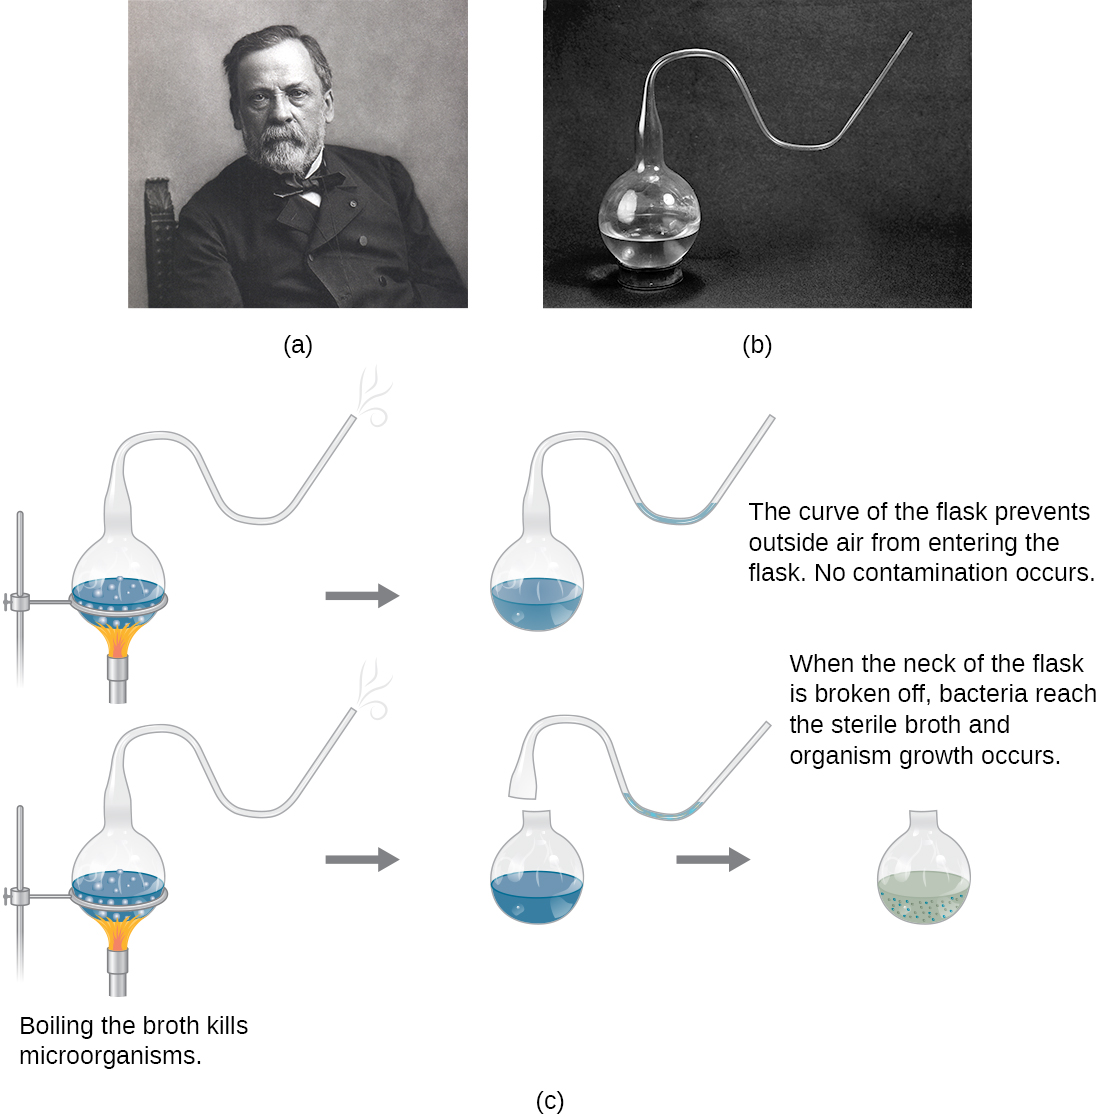 a) Photo of Louis Pasteur b) Photo of Pasteur's flask – a round flask that is only opened to the outside through a long S-shaped tube. c) A drawing of Pasteur's experiment. The top diagram shows the swan-neck flask from (b) containing broth that is being boiled to kill microorganisms in the broth. After the boiling process the cooled flask remains sterile because the curve of the flask prevents outside air from entering the flask. So, no contamination occurs. The bottom diagram shows the same flask being boiled. Next, the swan-neck is removed and the flask is opened to the environment. When the neck of the flask is broken off, bacteria reach the sterile broth and organism growth occurs. This is seen as cloudiness in the broth.